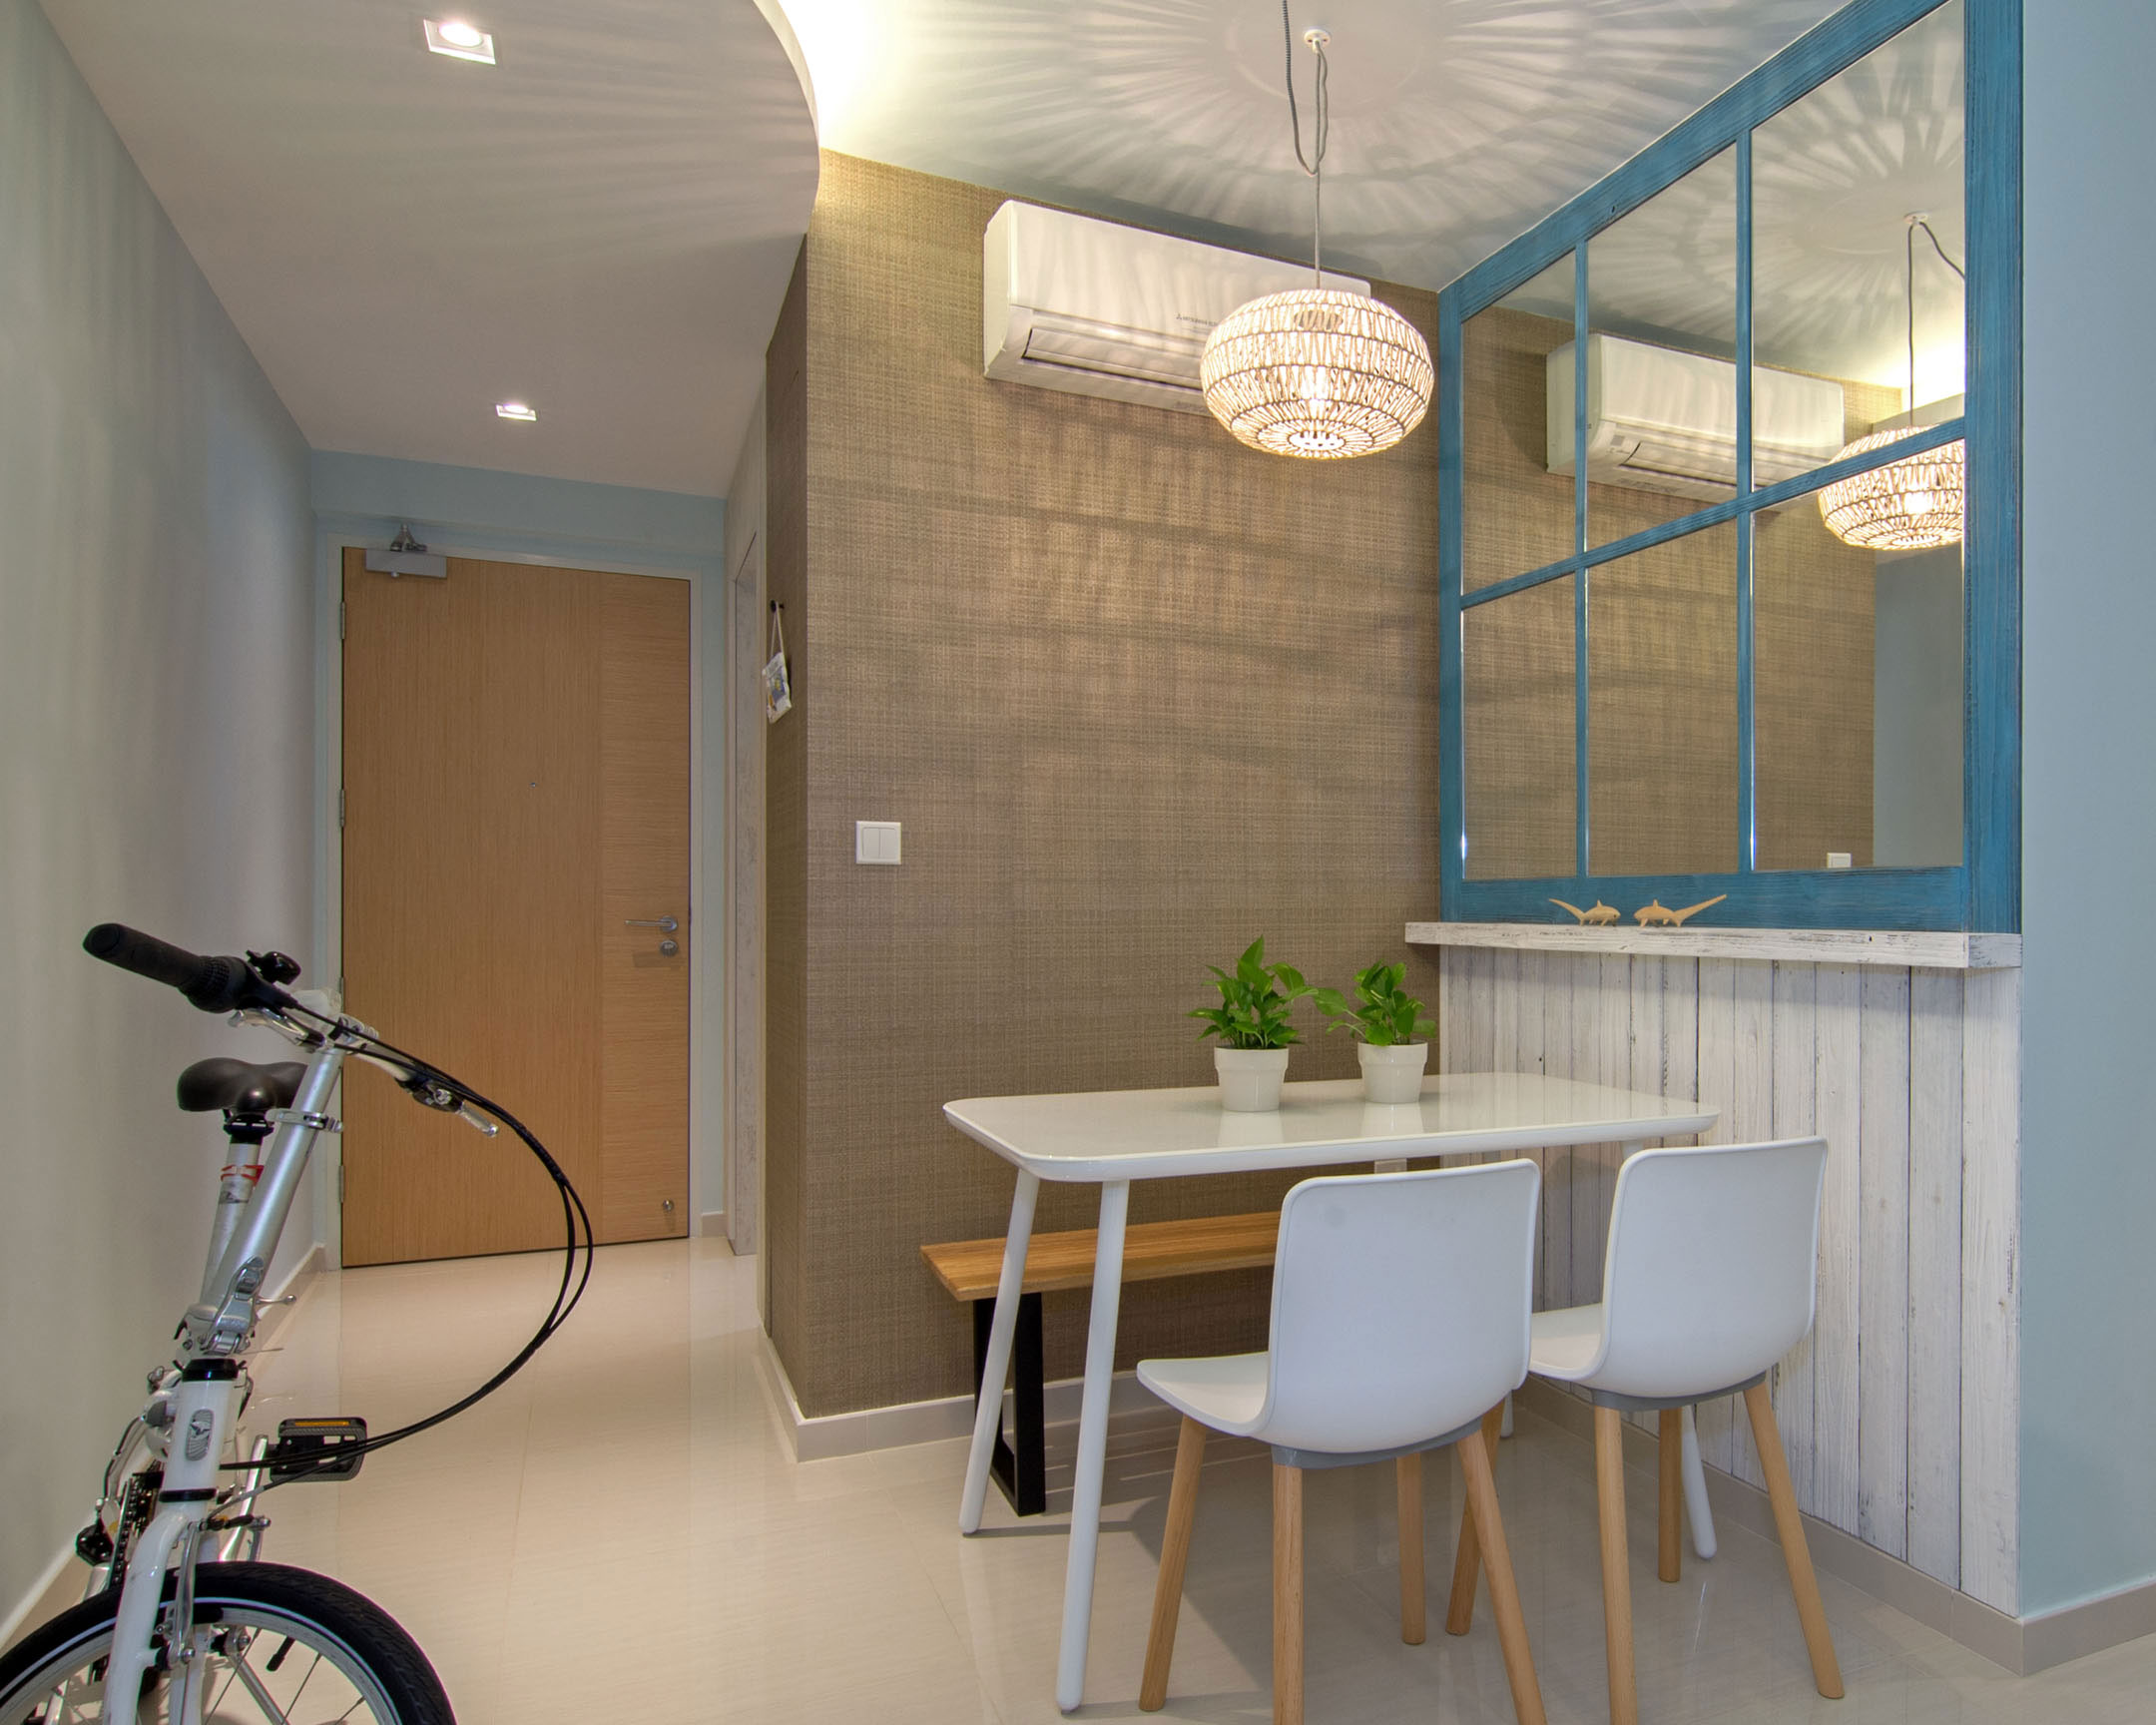 Beach house urban apartment in Singapore by Vievva Designers-10